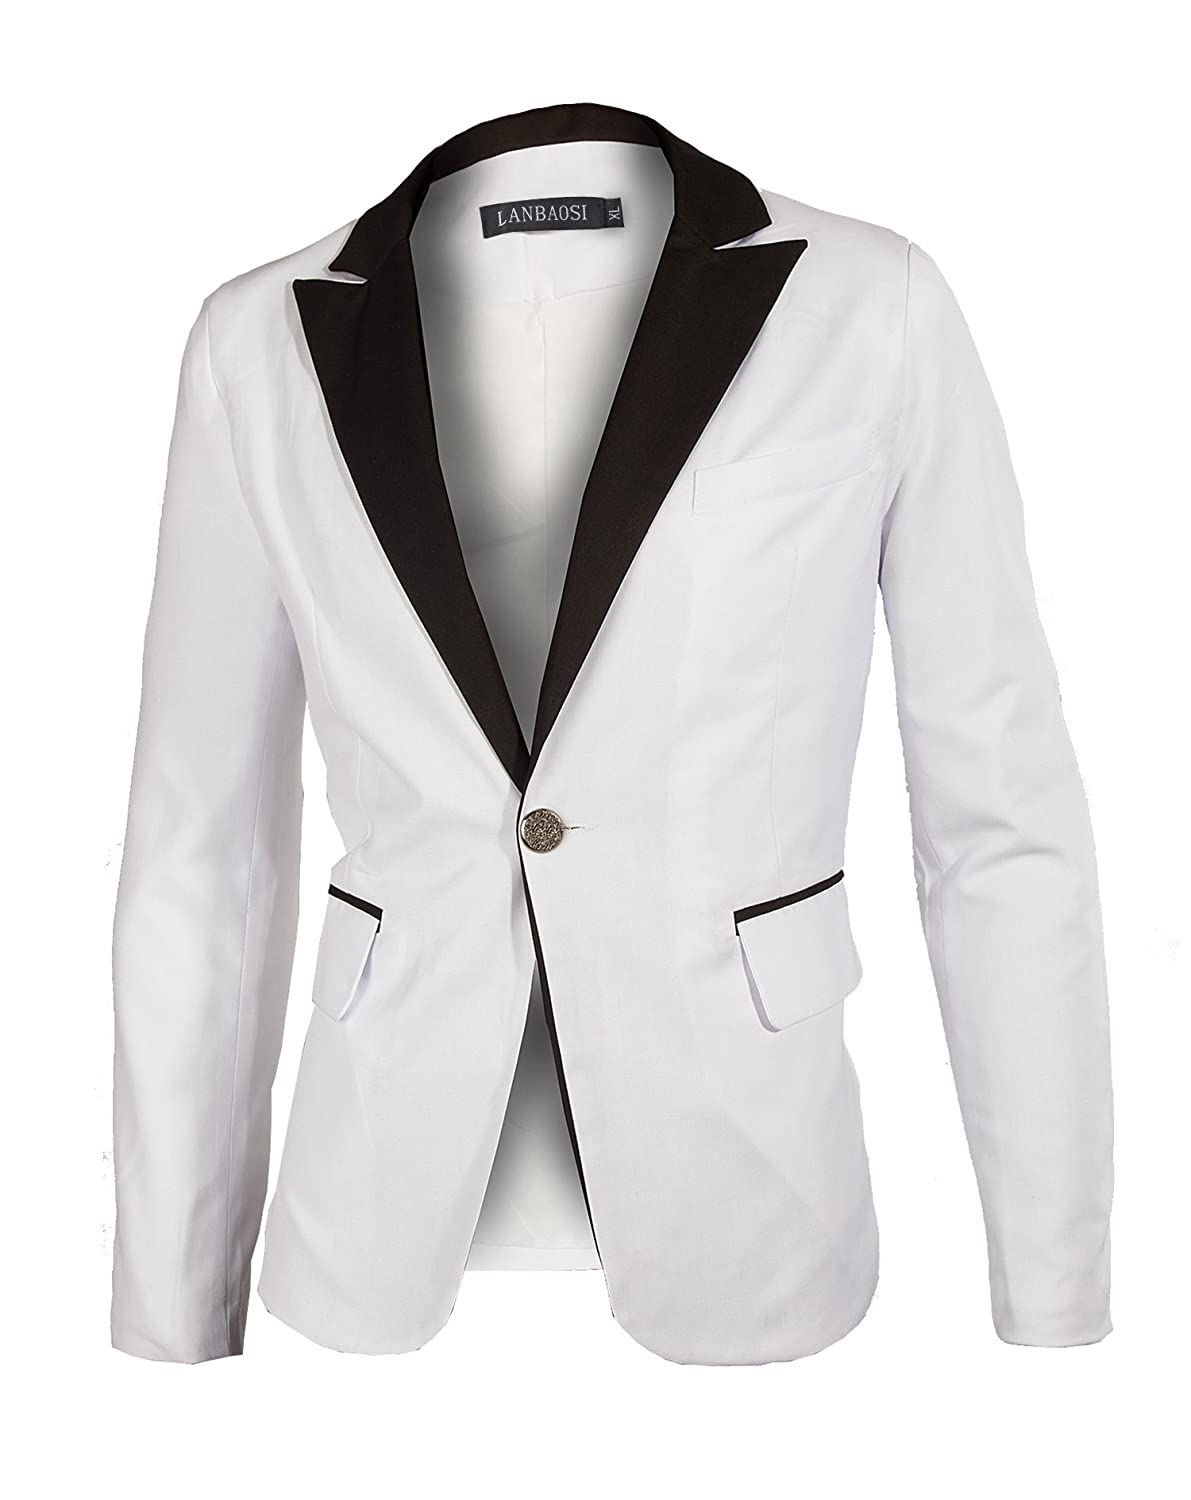 Lanbaosi Men's 1 Button White Dress Suit Jacket and Pants Sets at ...